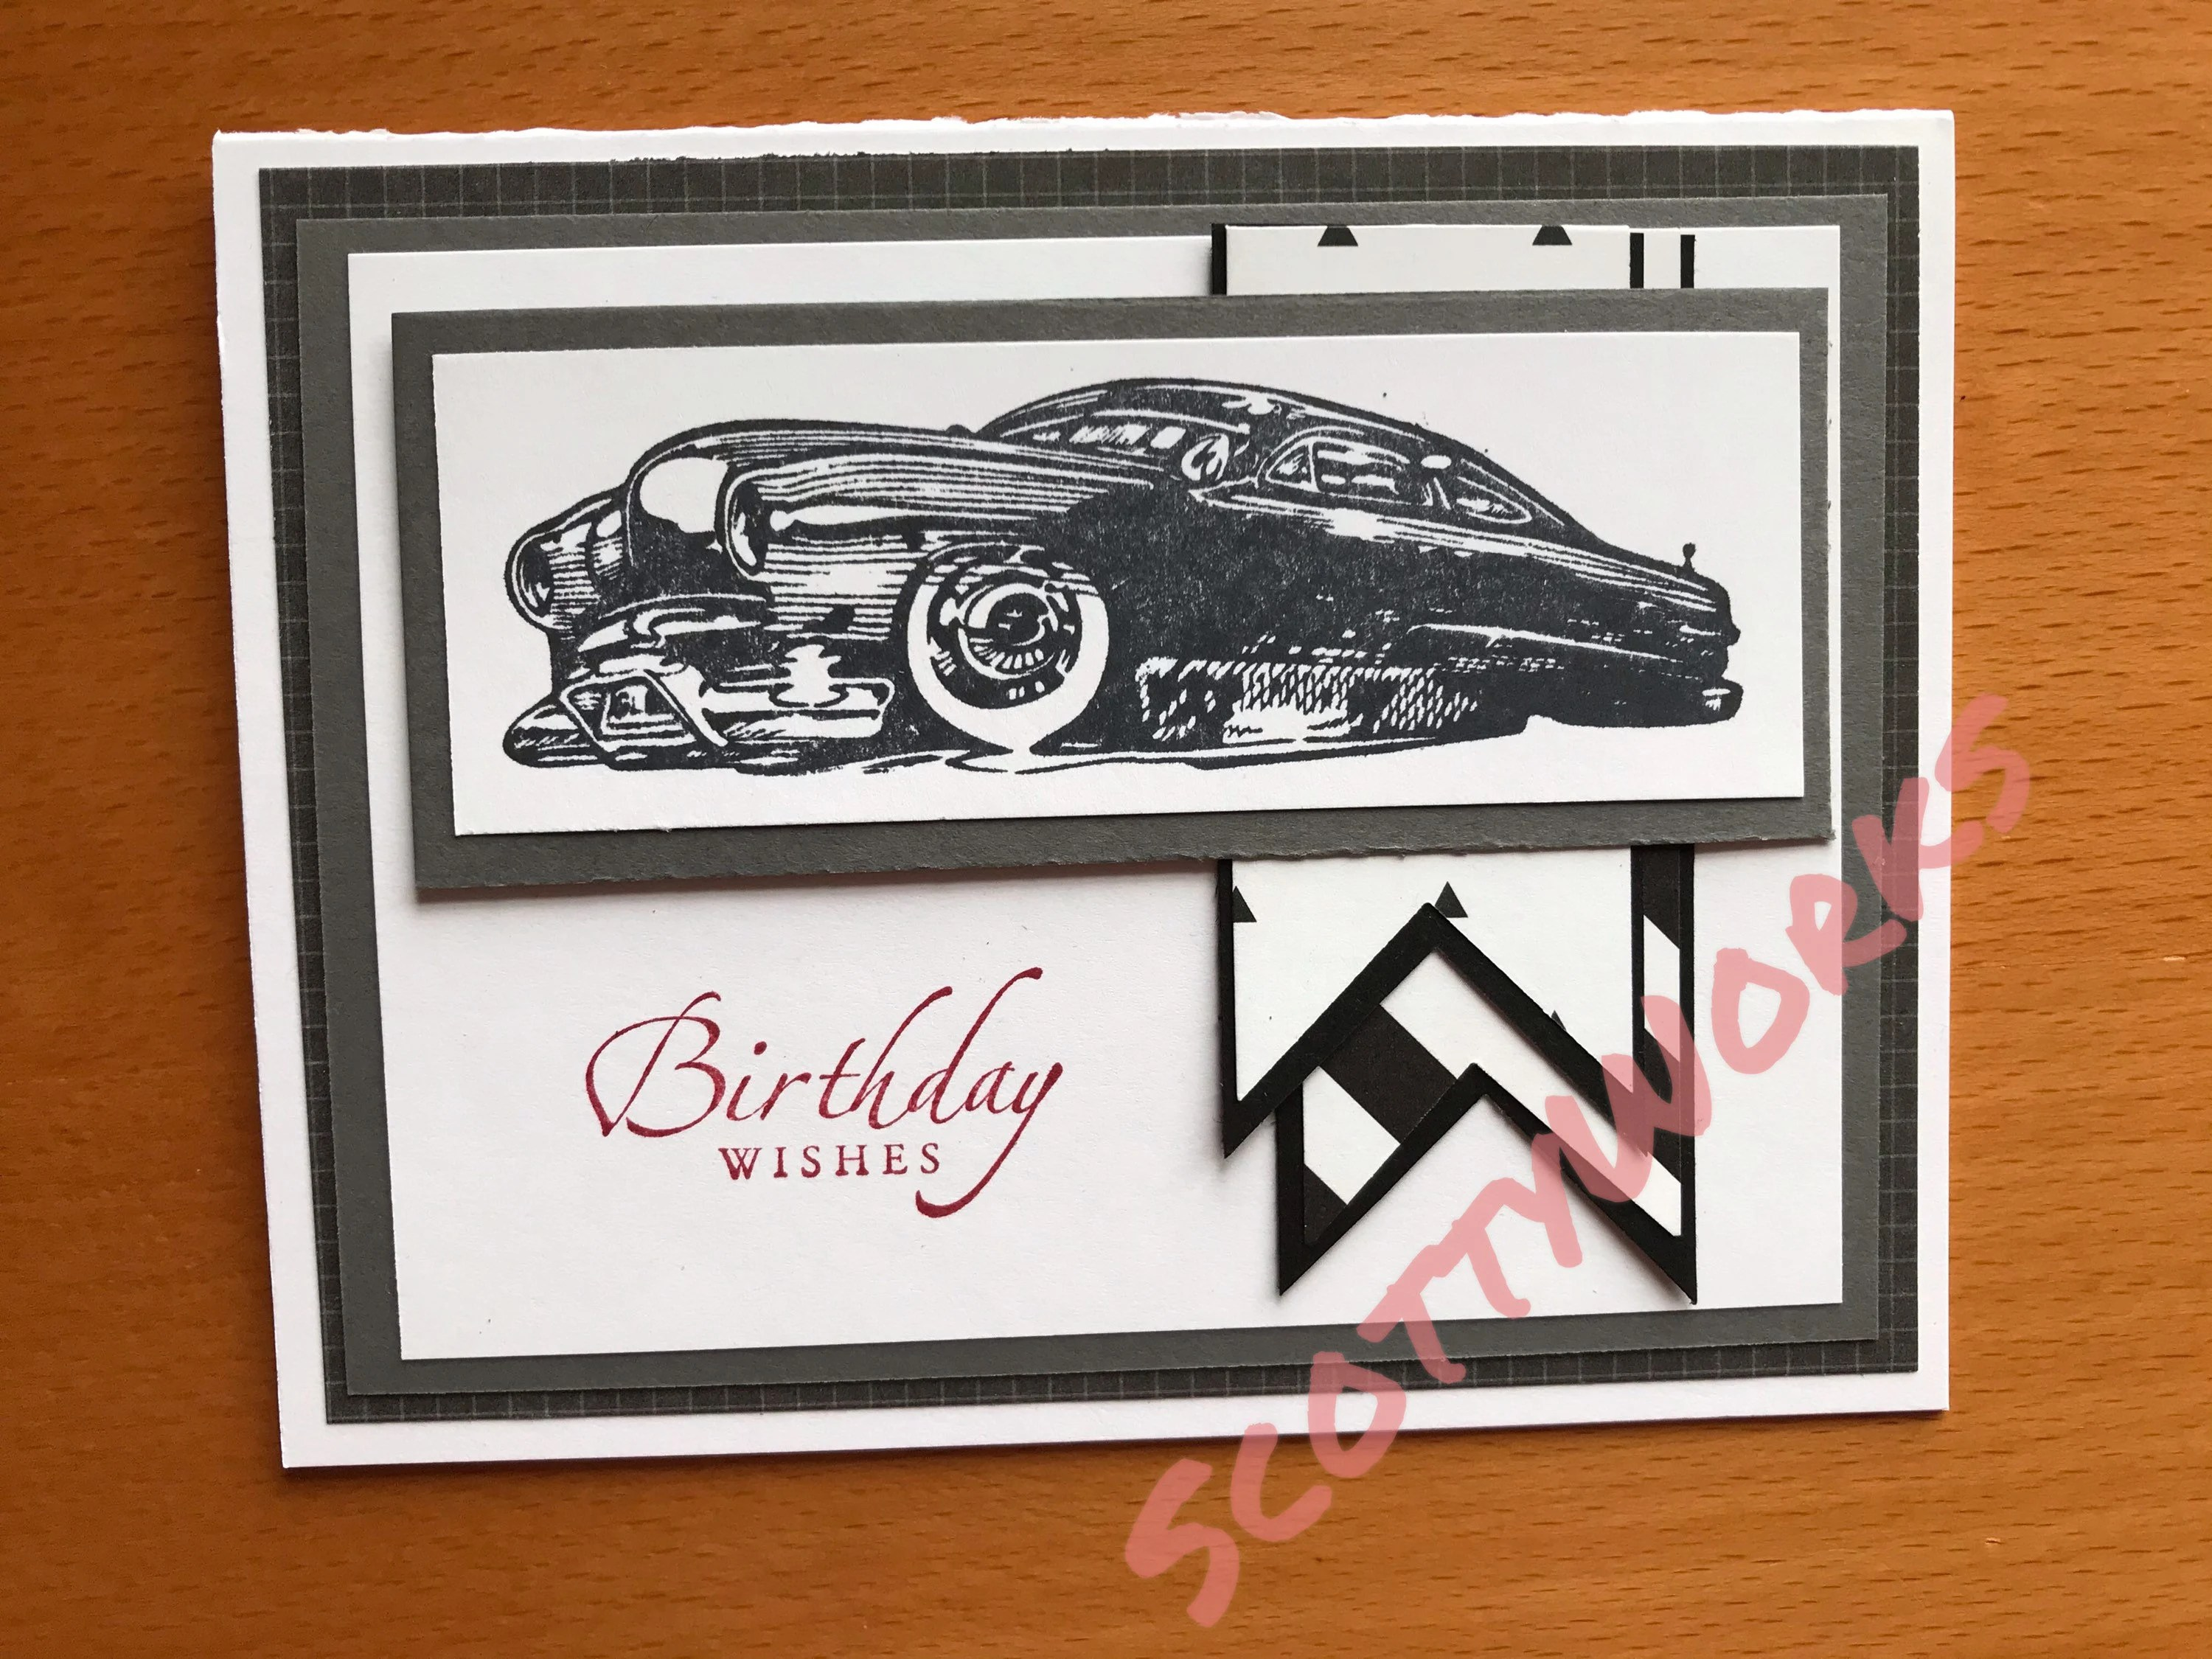 Birthday Wishes Card For Car Guy Birthday Card Card With Old Etsy